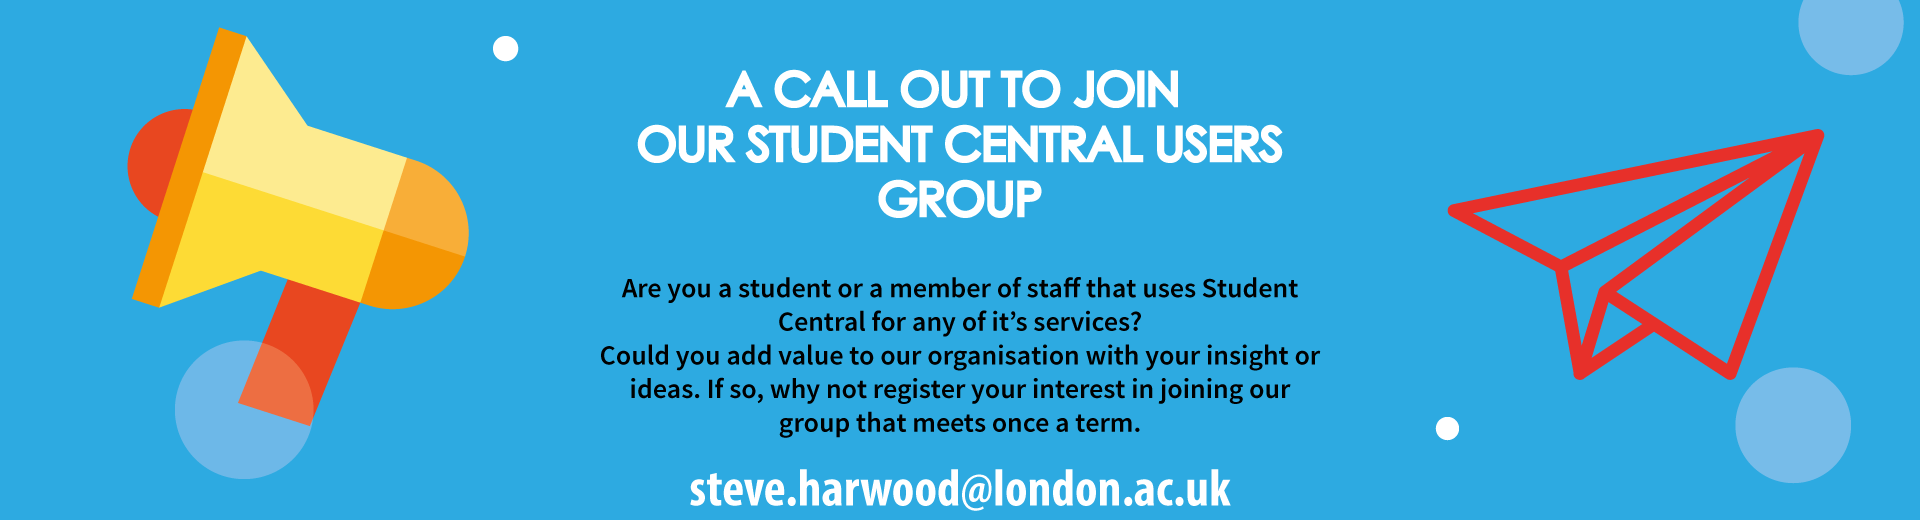 Student central user group london